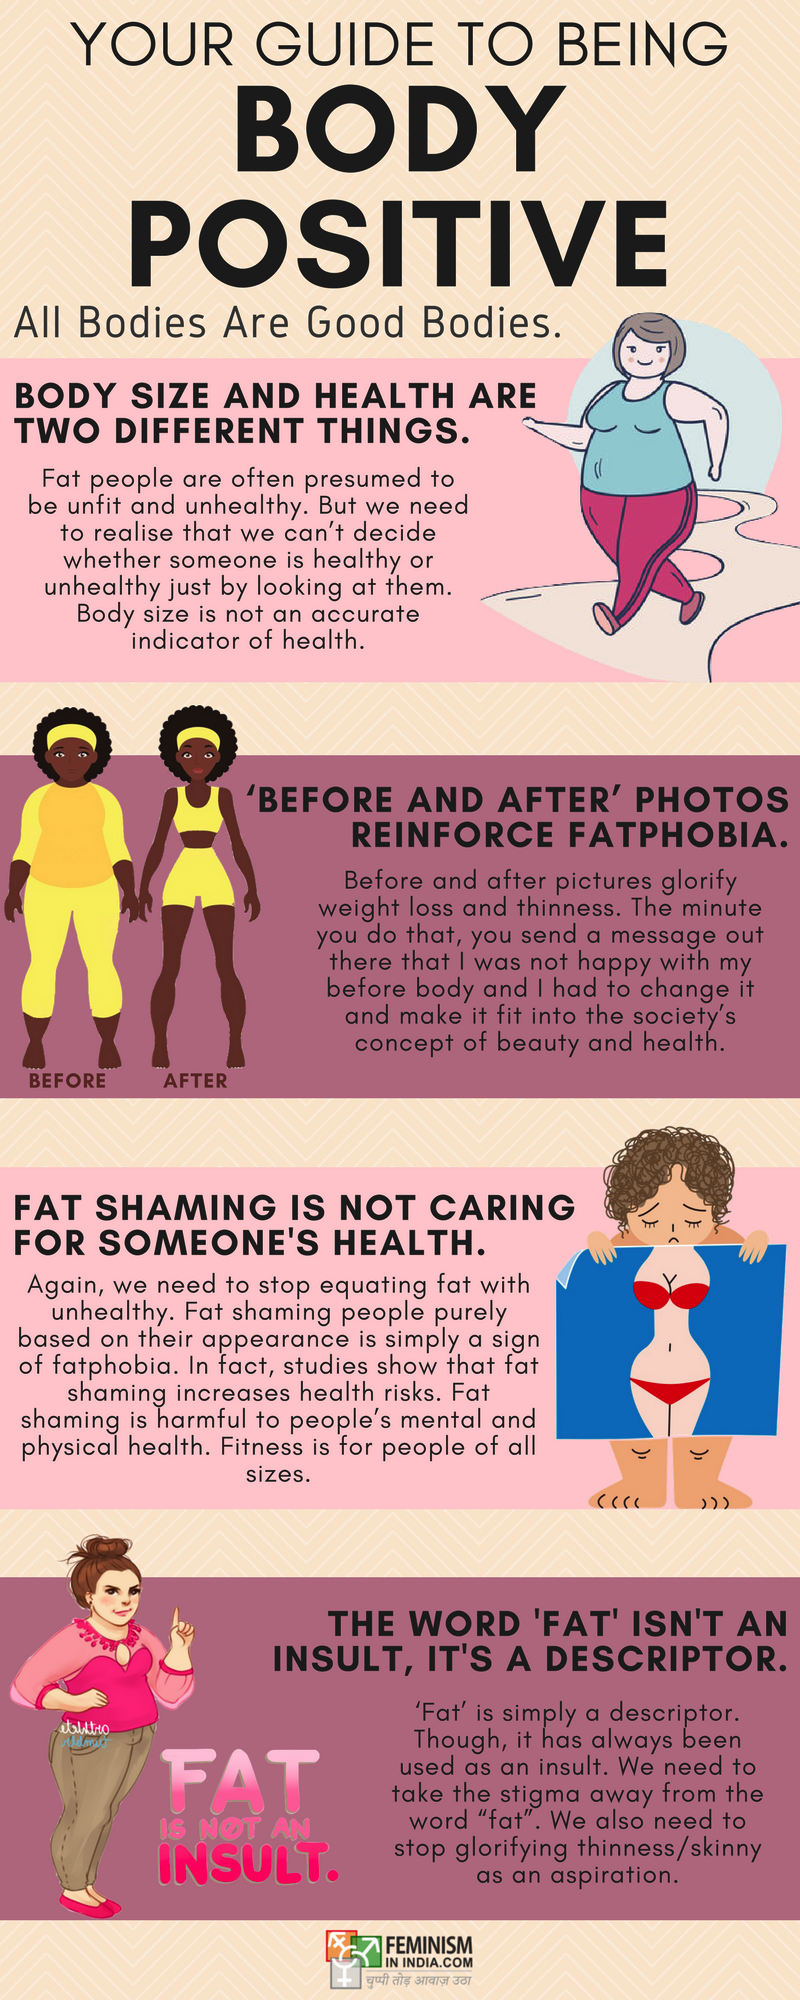 Your Guide To Being Body Positive (Infographic)